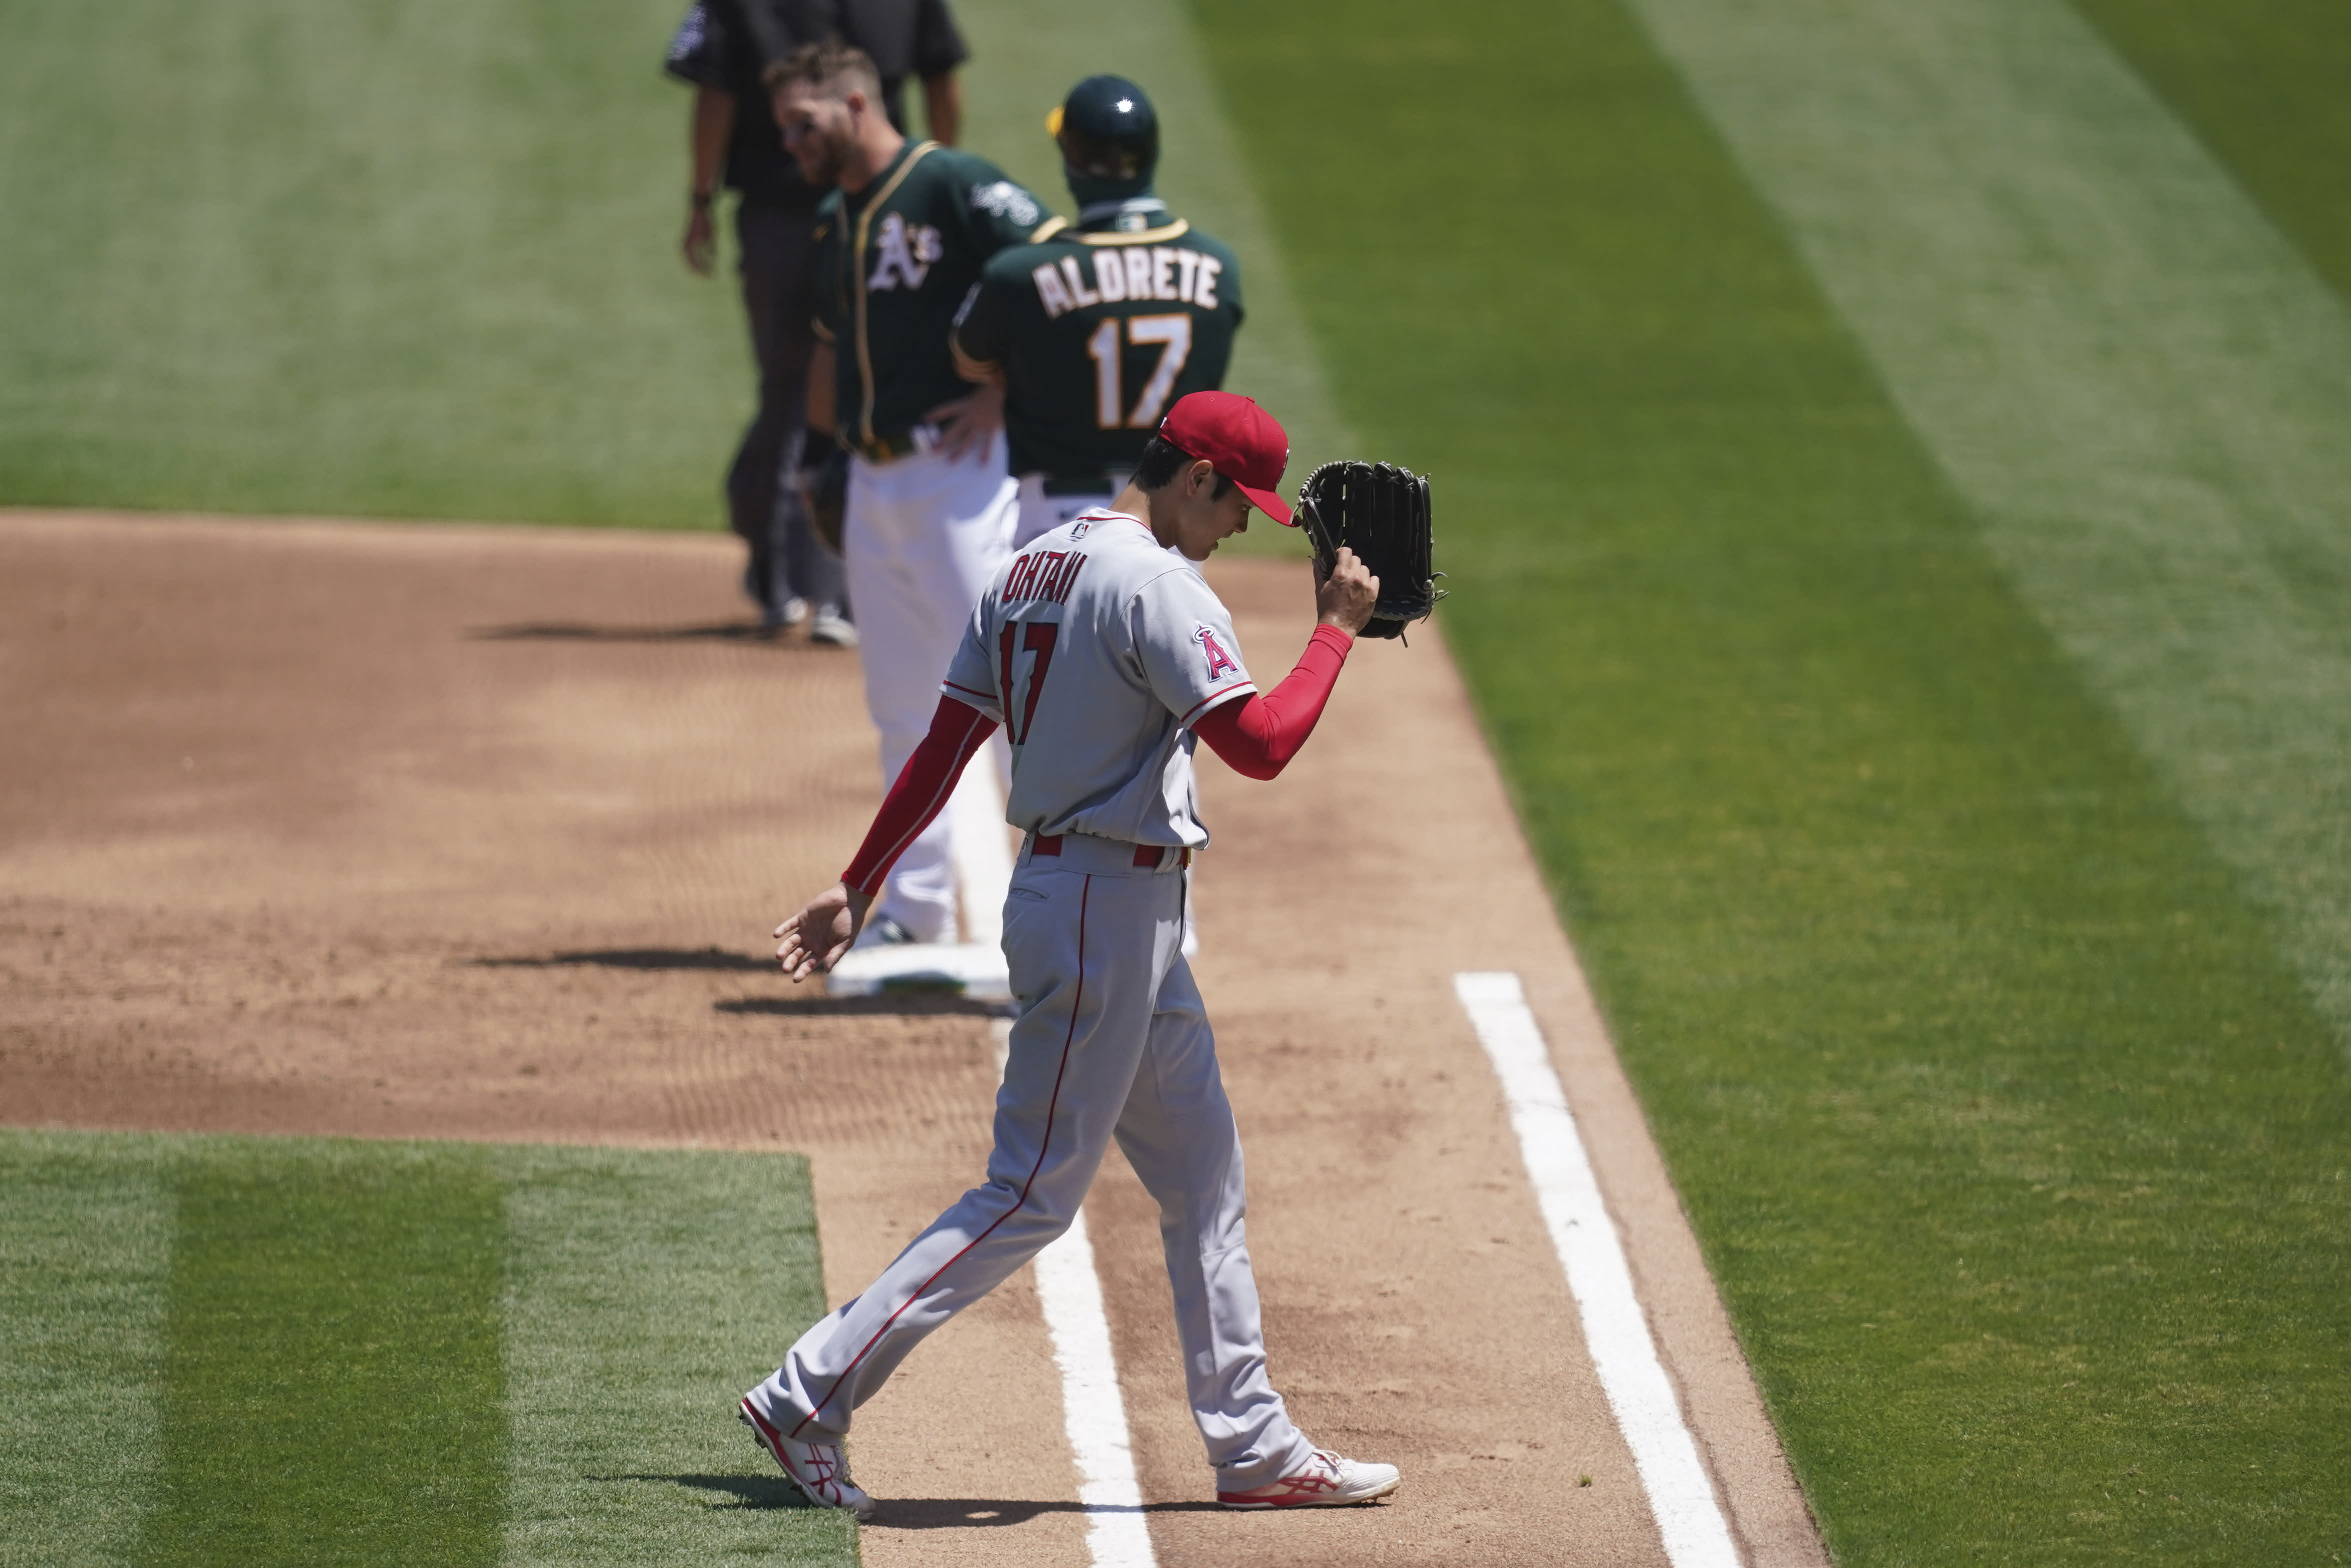 Los Angeles Angels' Shohei Ohtani (17) walks toward the dugout after being relieved during the first inning of a baseball game against the Oakland Athletics in Oakland, Calif., Sunday, July 26, 2020. Athletics' Robbie Grossman, top left, hit an RBI-single. (AP Photo/Jeff Chiu)